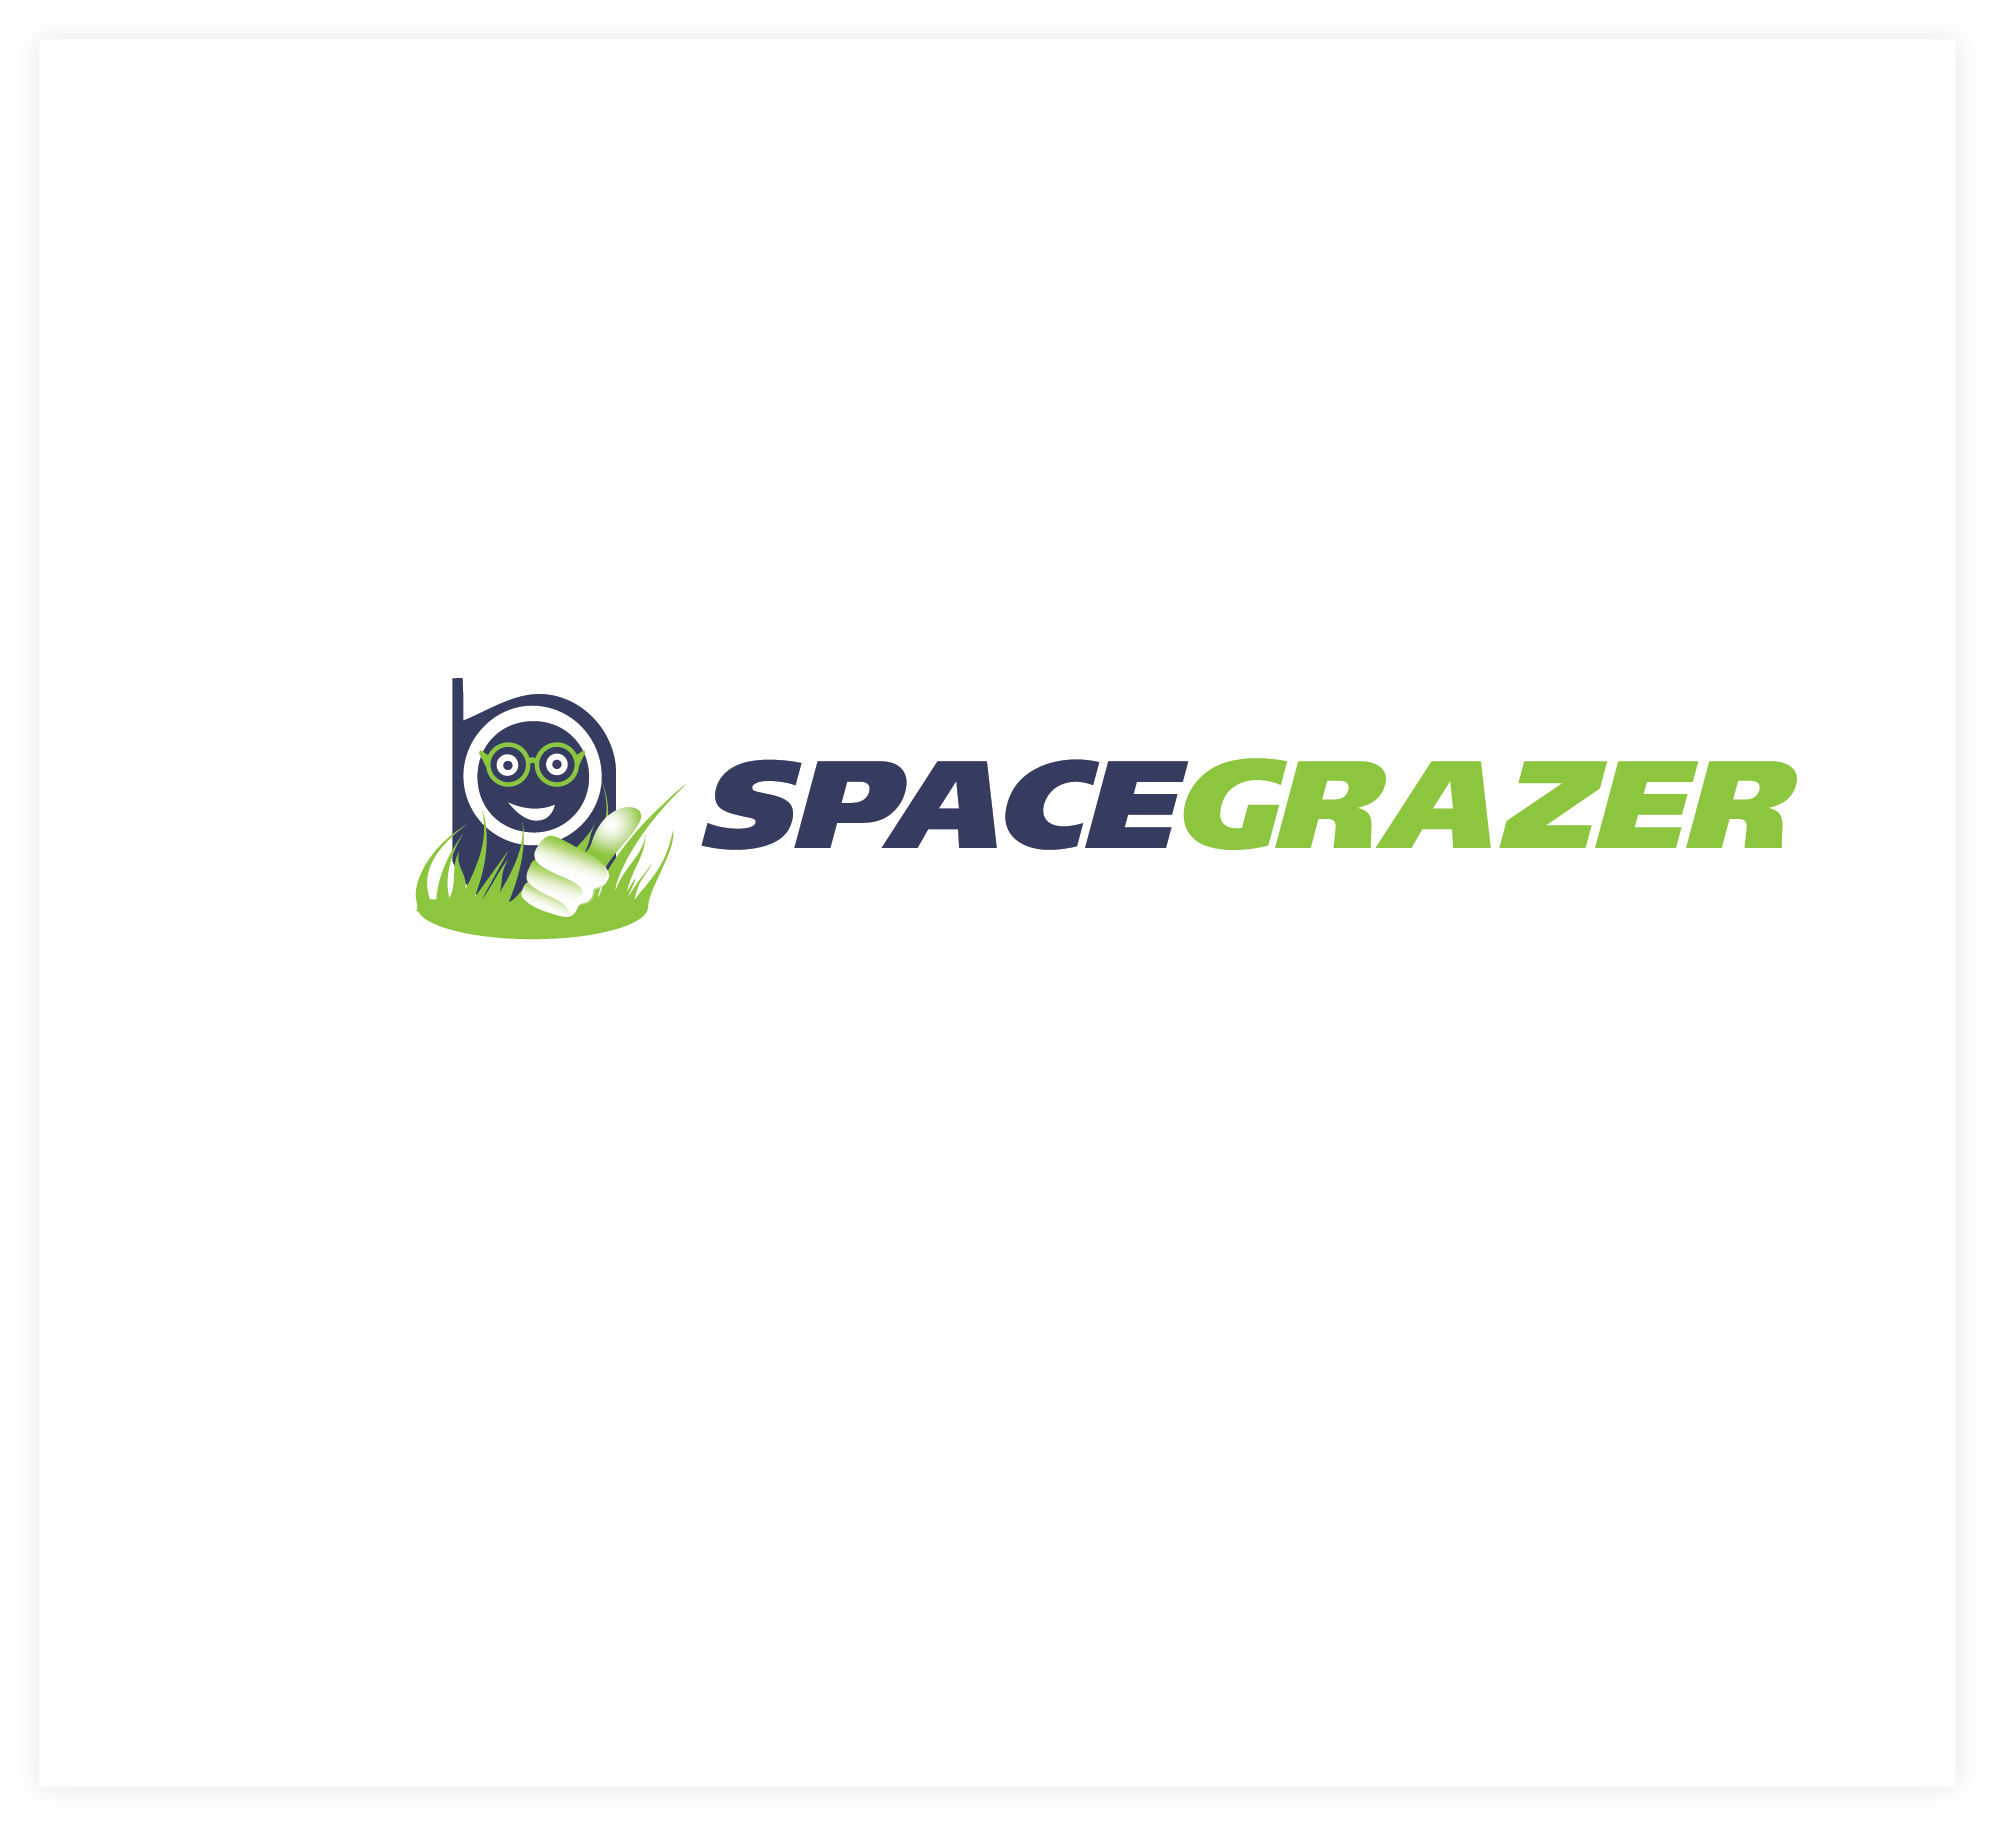 Logo Design by Agnes Bak - Entry No. 47 in the Logo Design Contest Fun Logo Design for Spacegrazer.